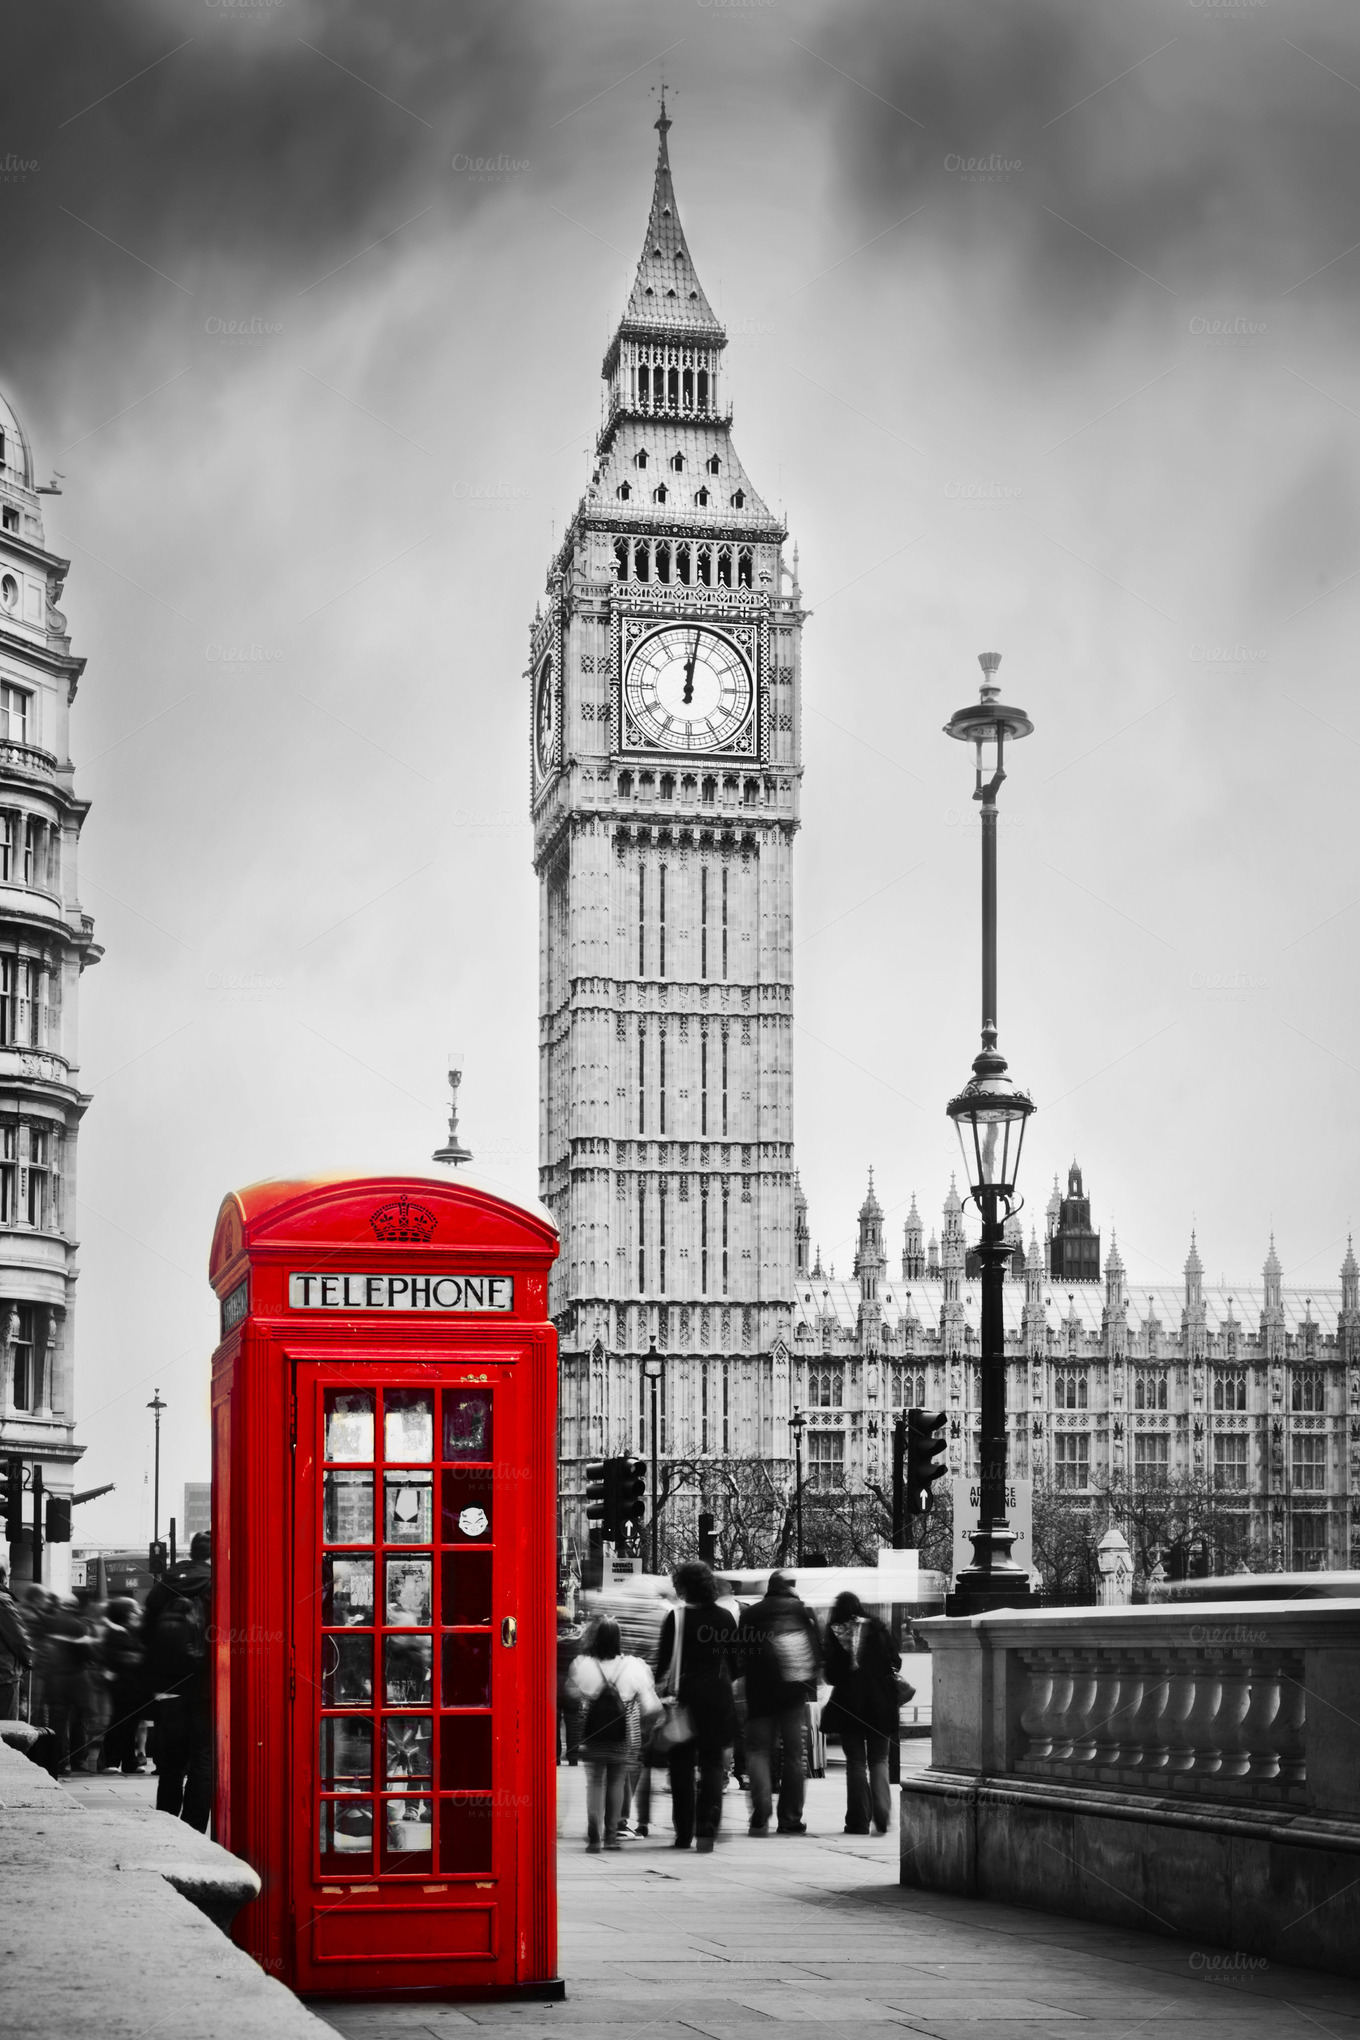 Telephone Booth Amp Big Ben London Architecture Photos On